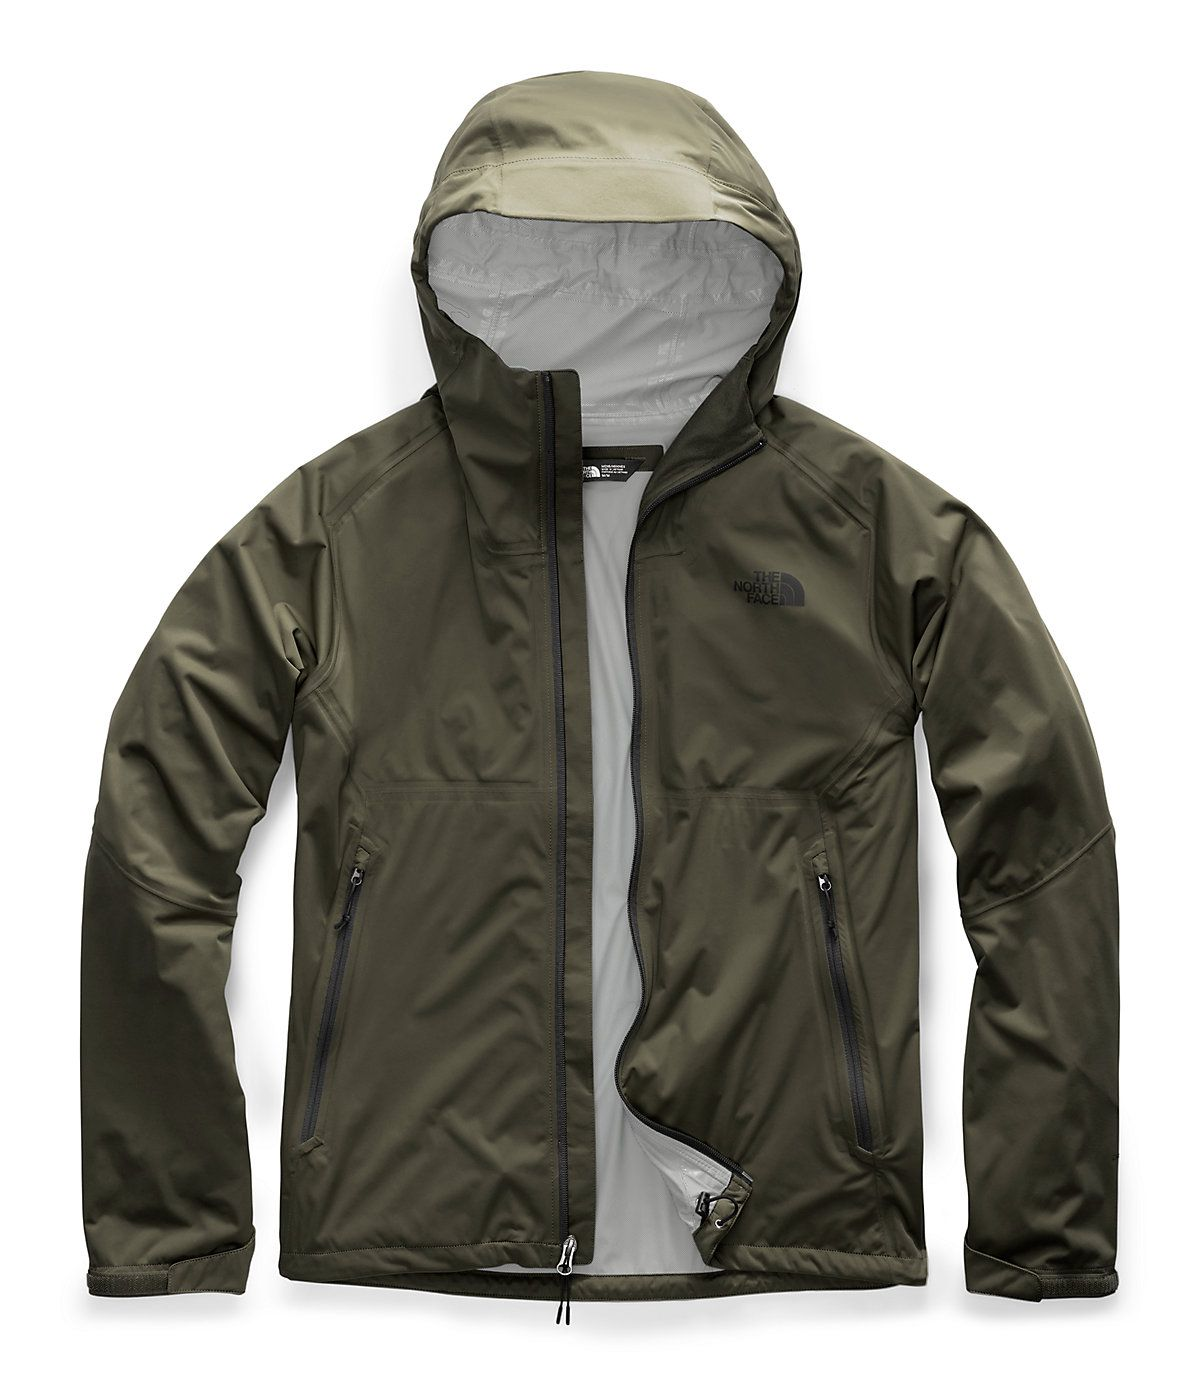 Men S Allproof Stretch Jacket The North Face In 2021 Winter Jacket Men Jackets Mens Travel Style [ 1396 x 1200 Pixel ]